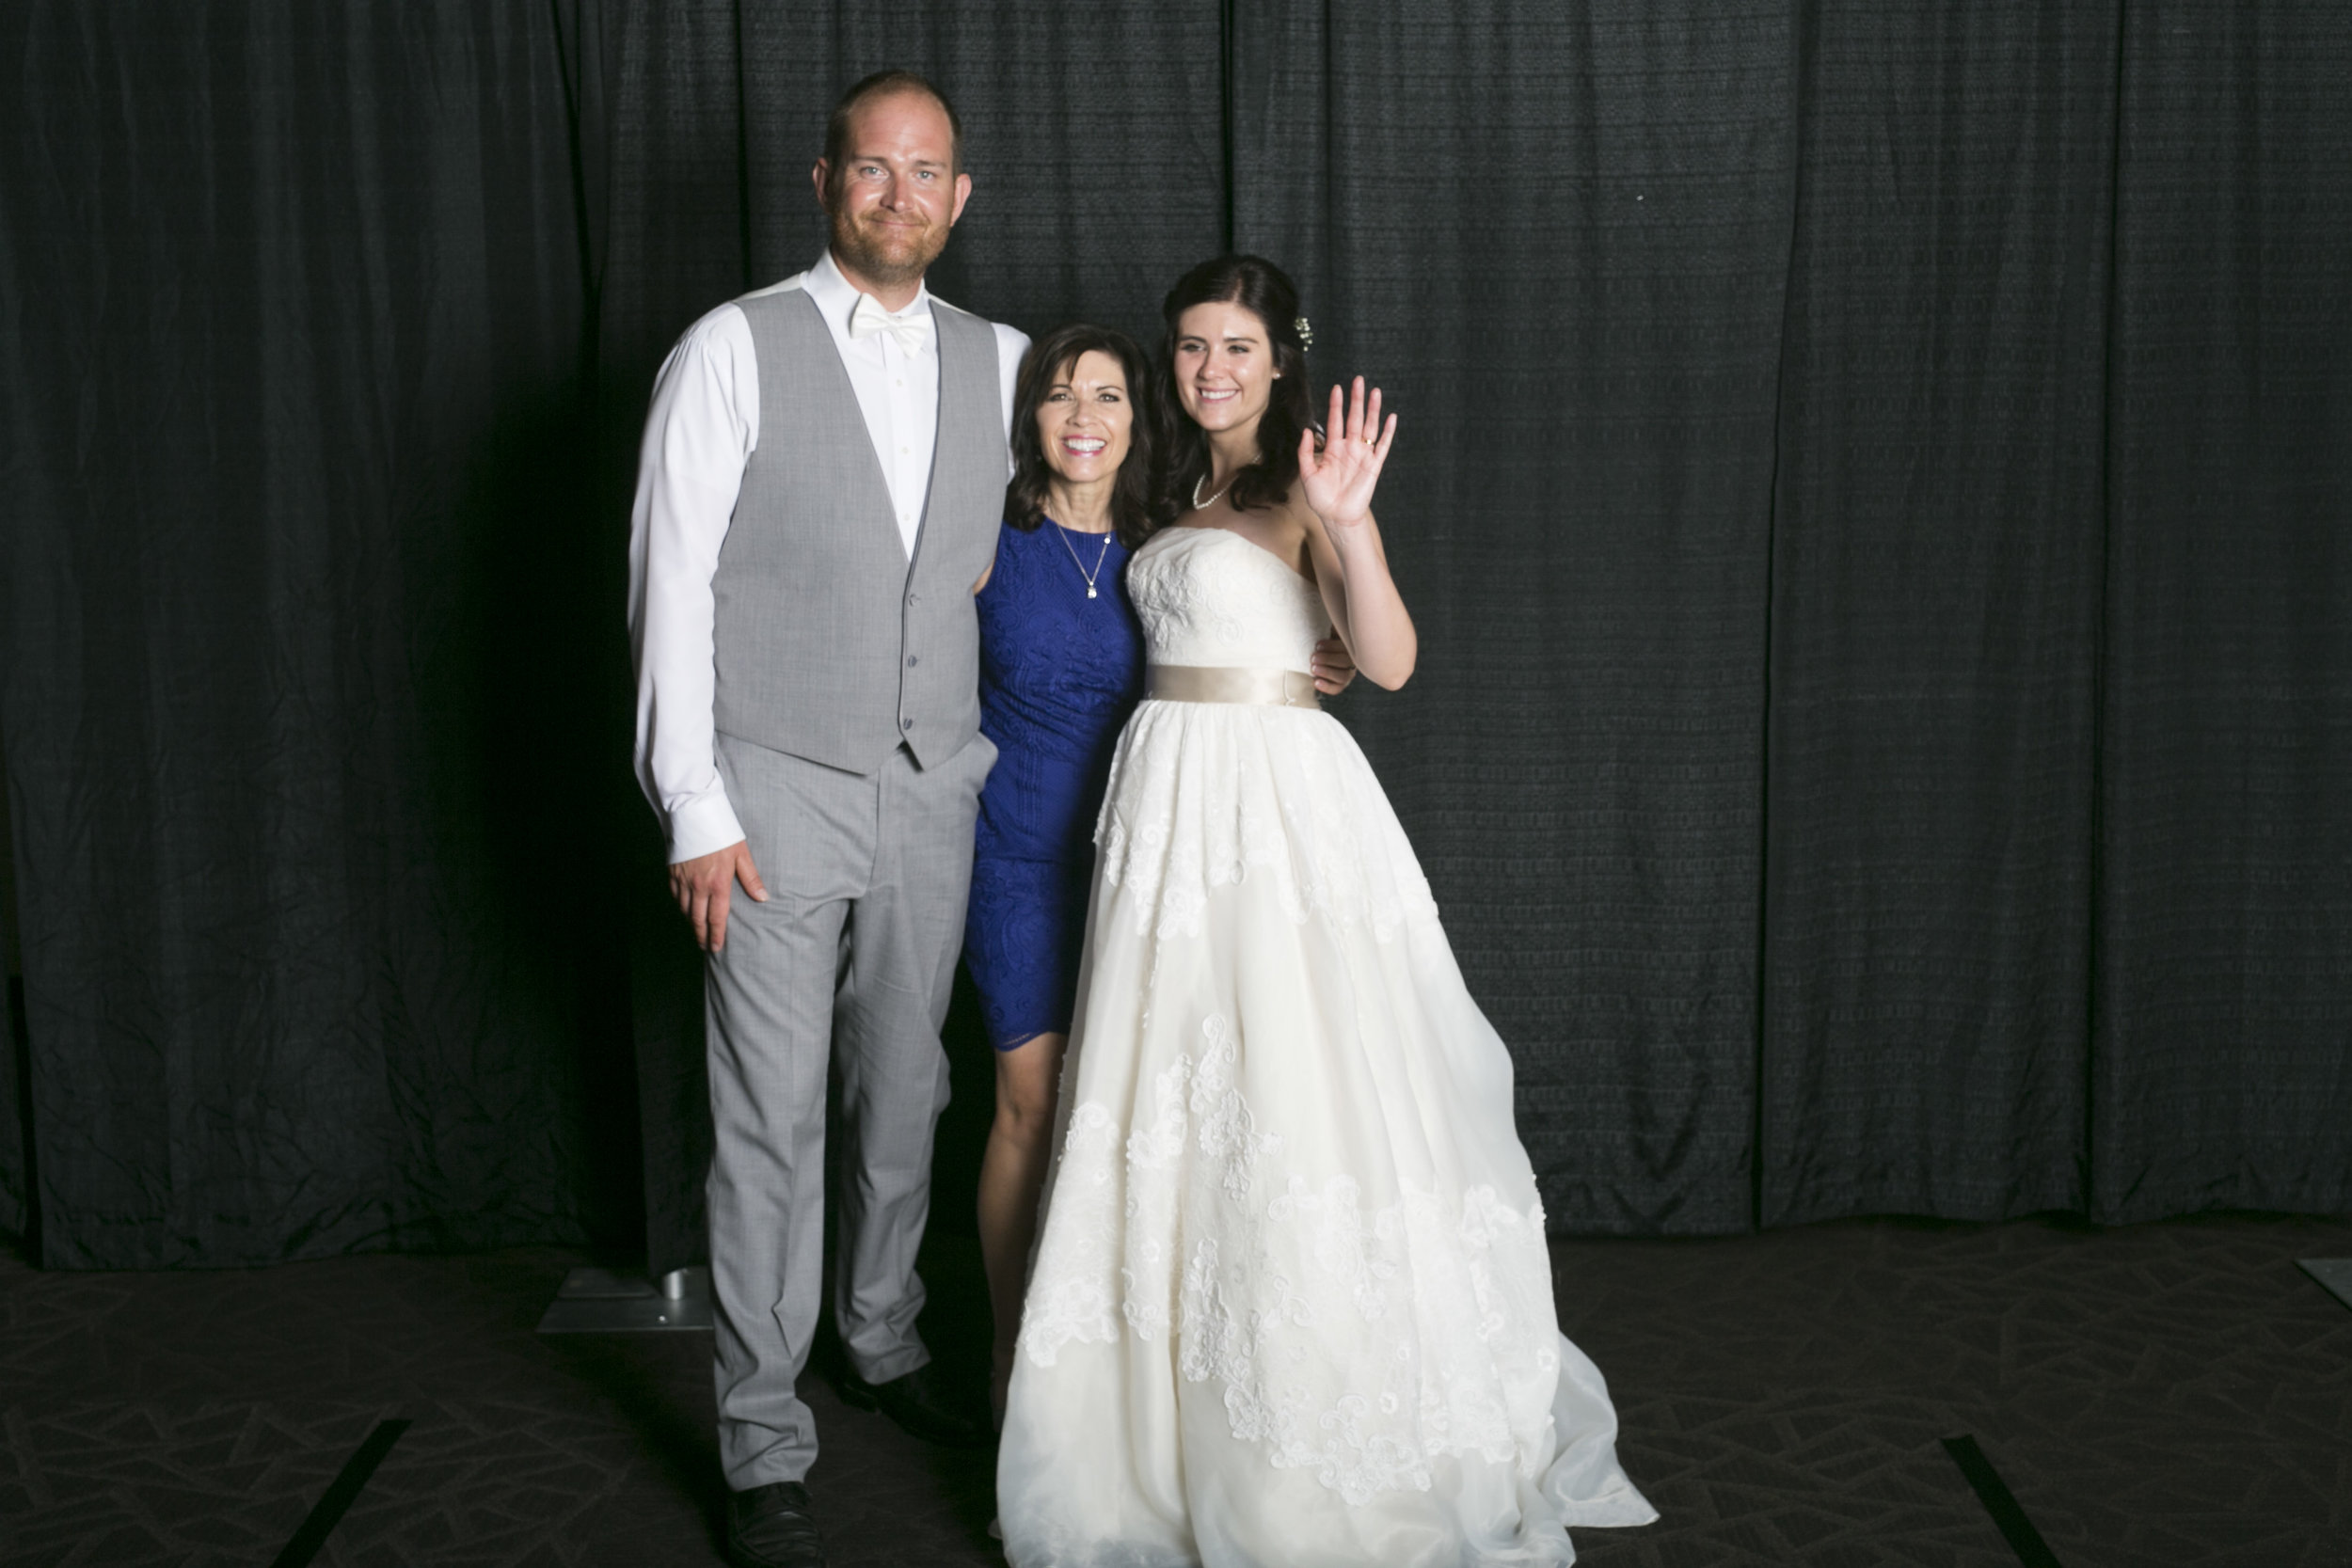 wedding photo booth-65.jpg